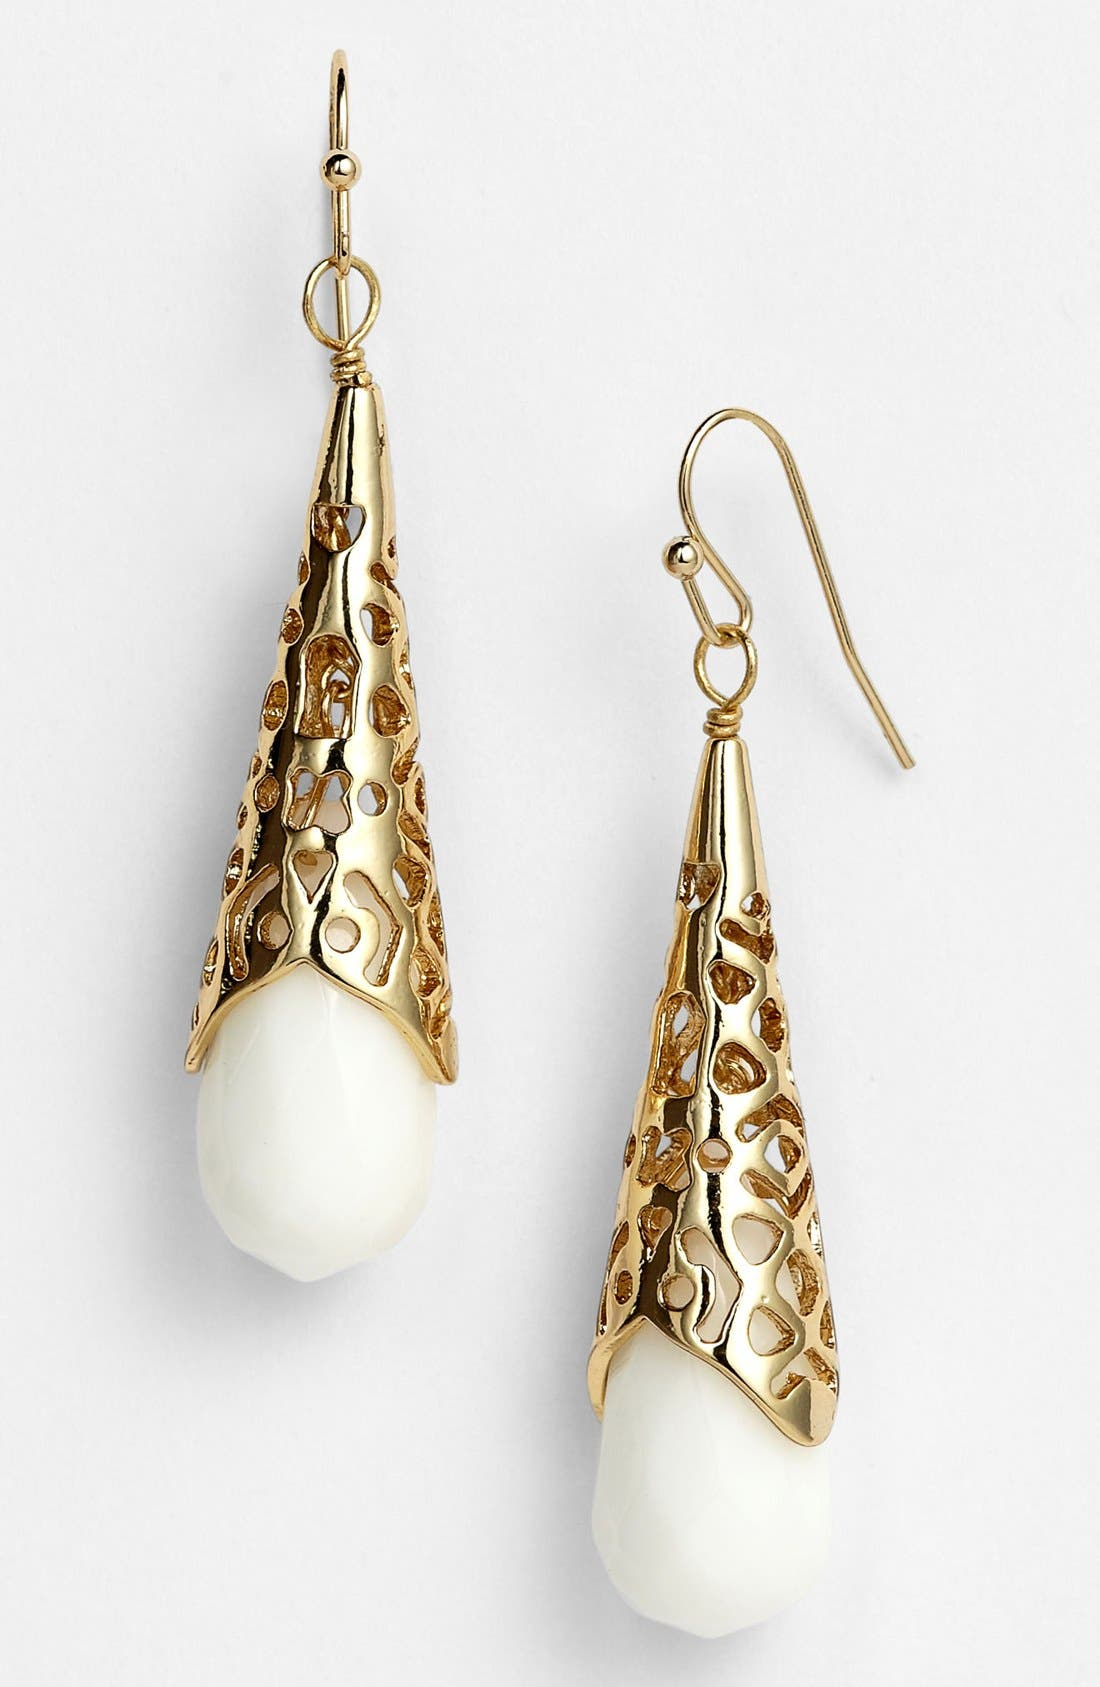 Alternate Image 1 Selected - Kendra Scott 'Avril' Drop Earrings (Nordstrom Exclusive)